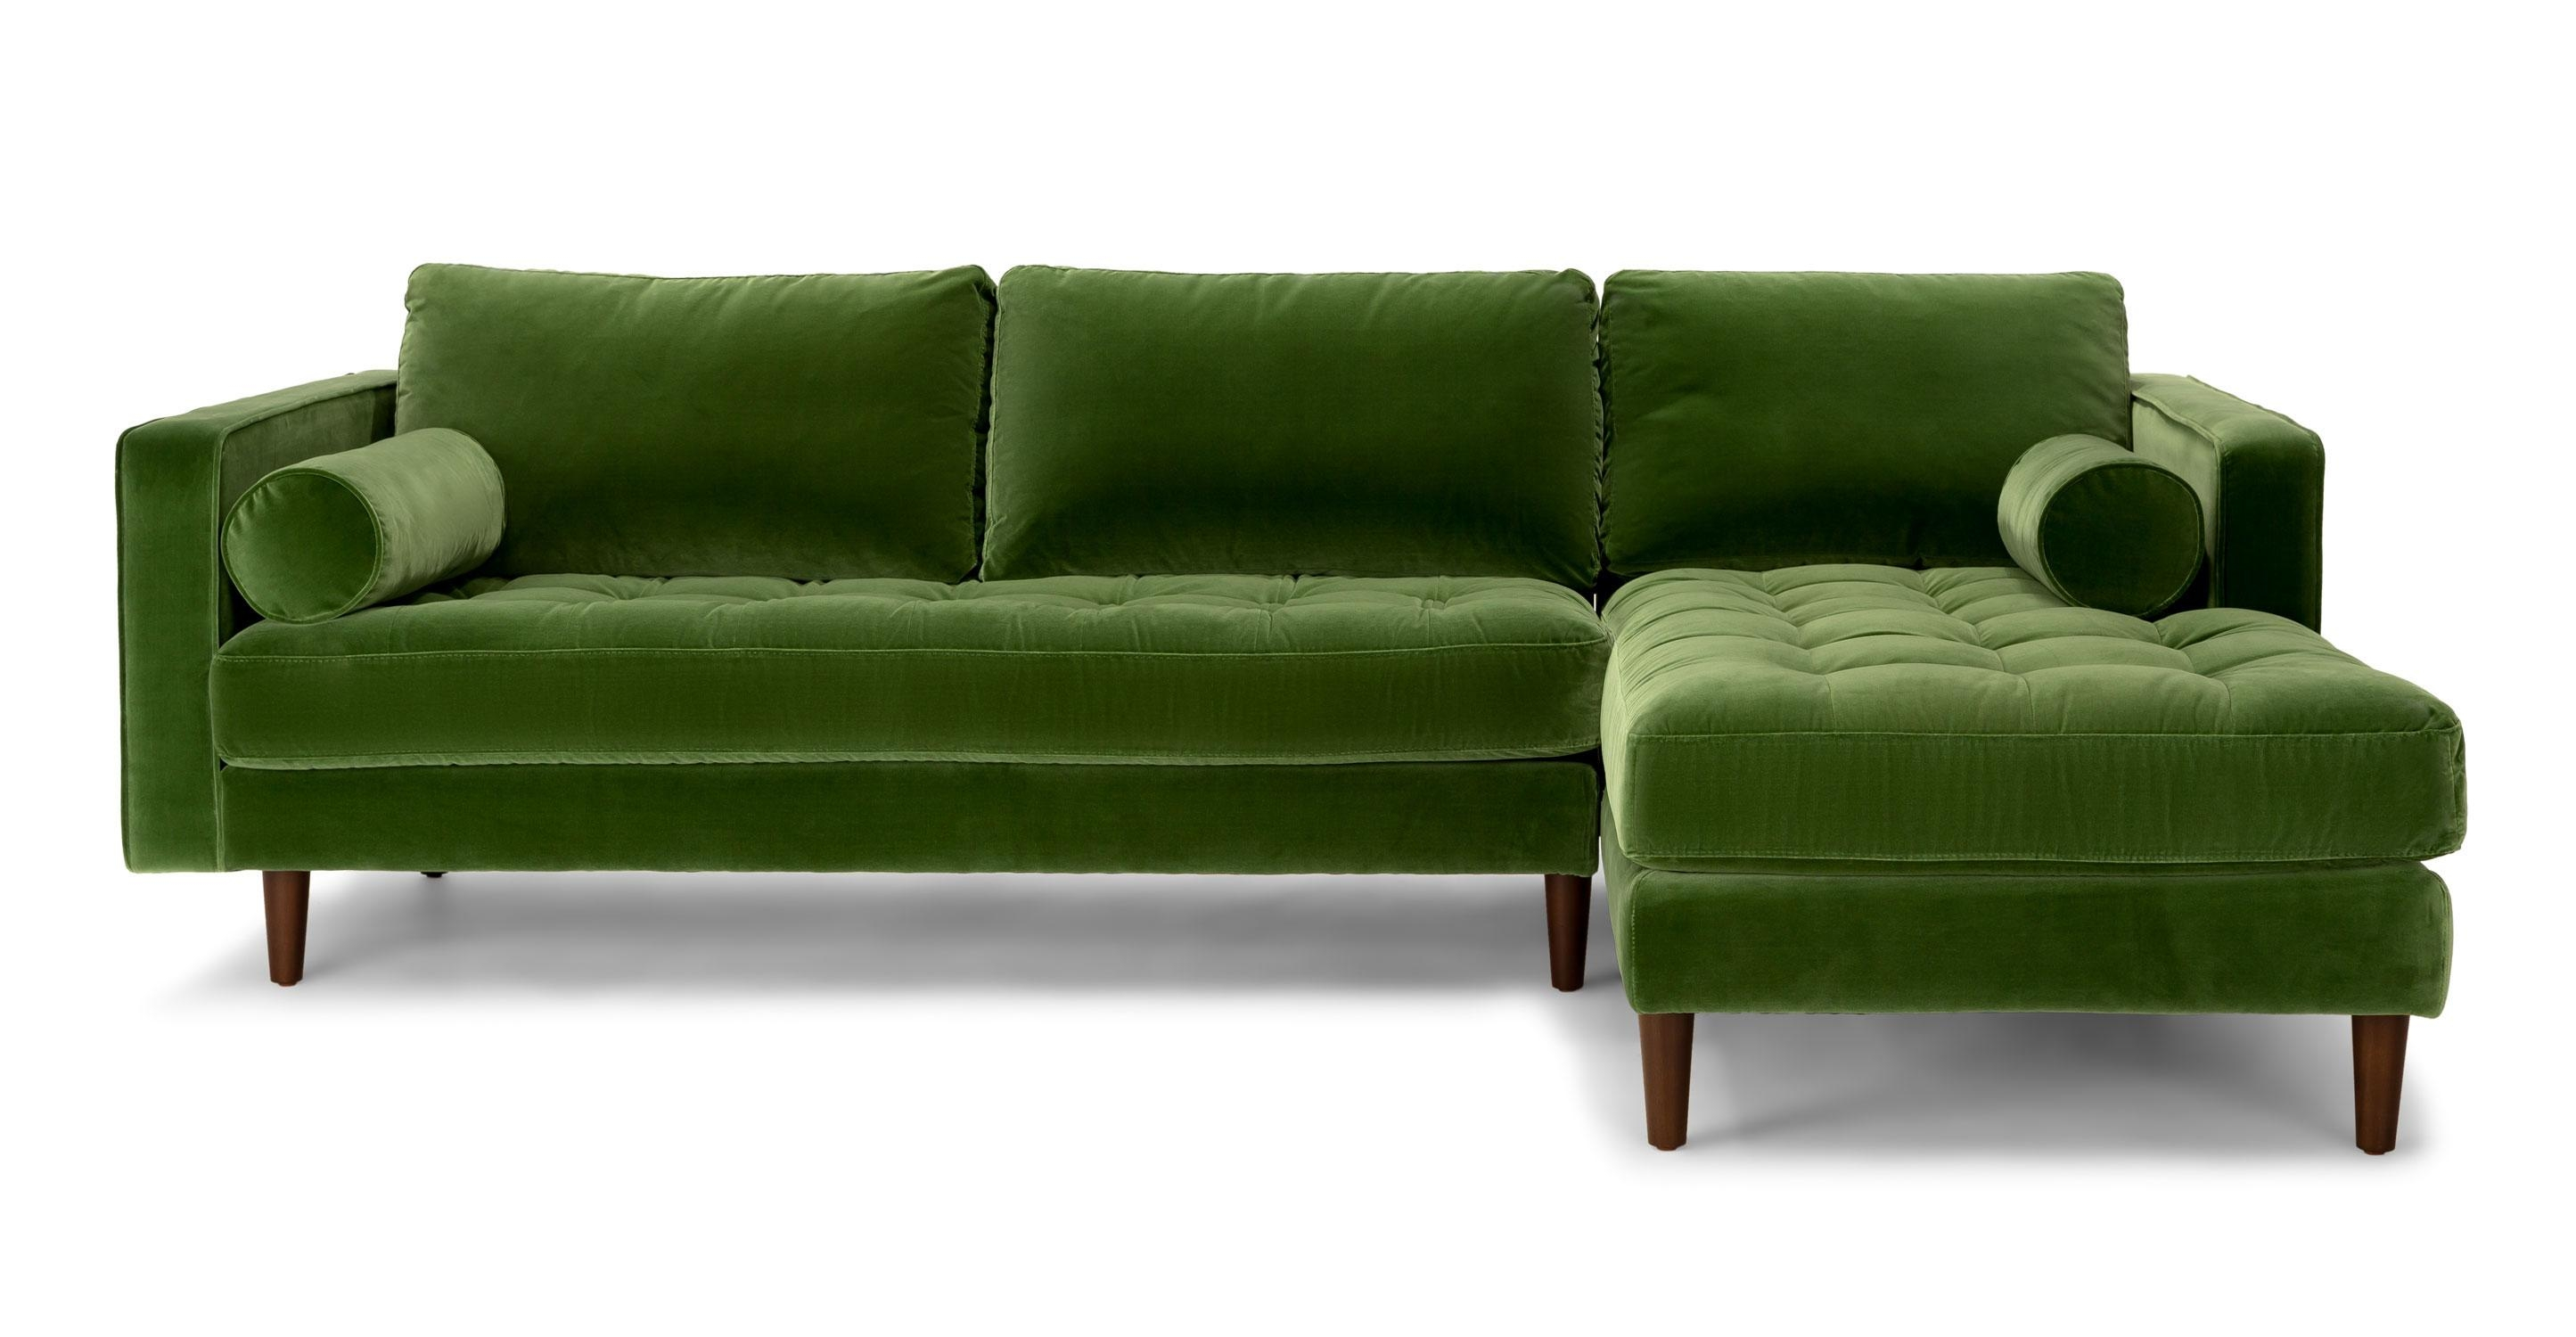 Decorating: Fill Your Living Room With Elegant Ashley Furniture Inside Green Leather Sectional Sofas (View 18 of 20)